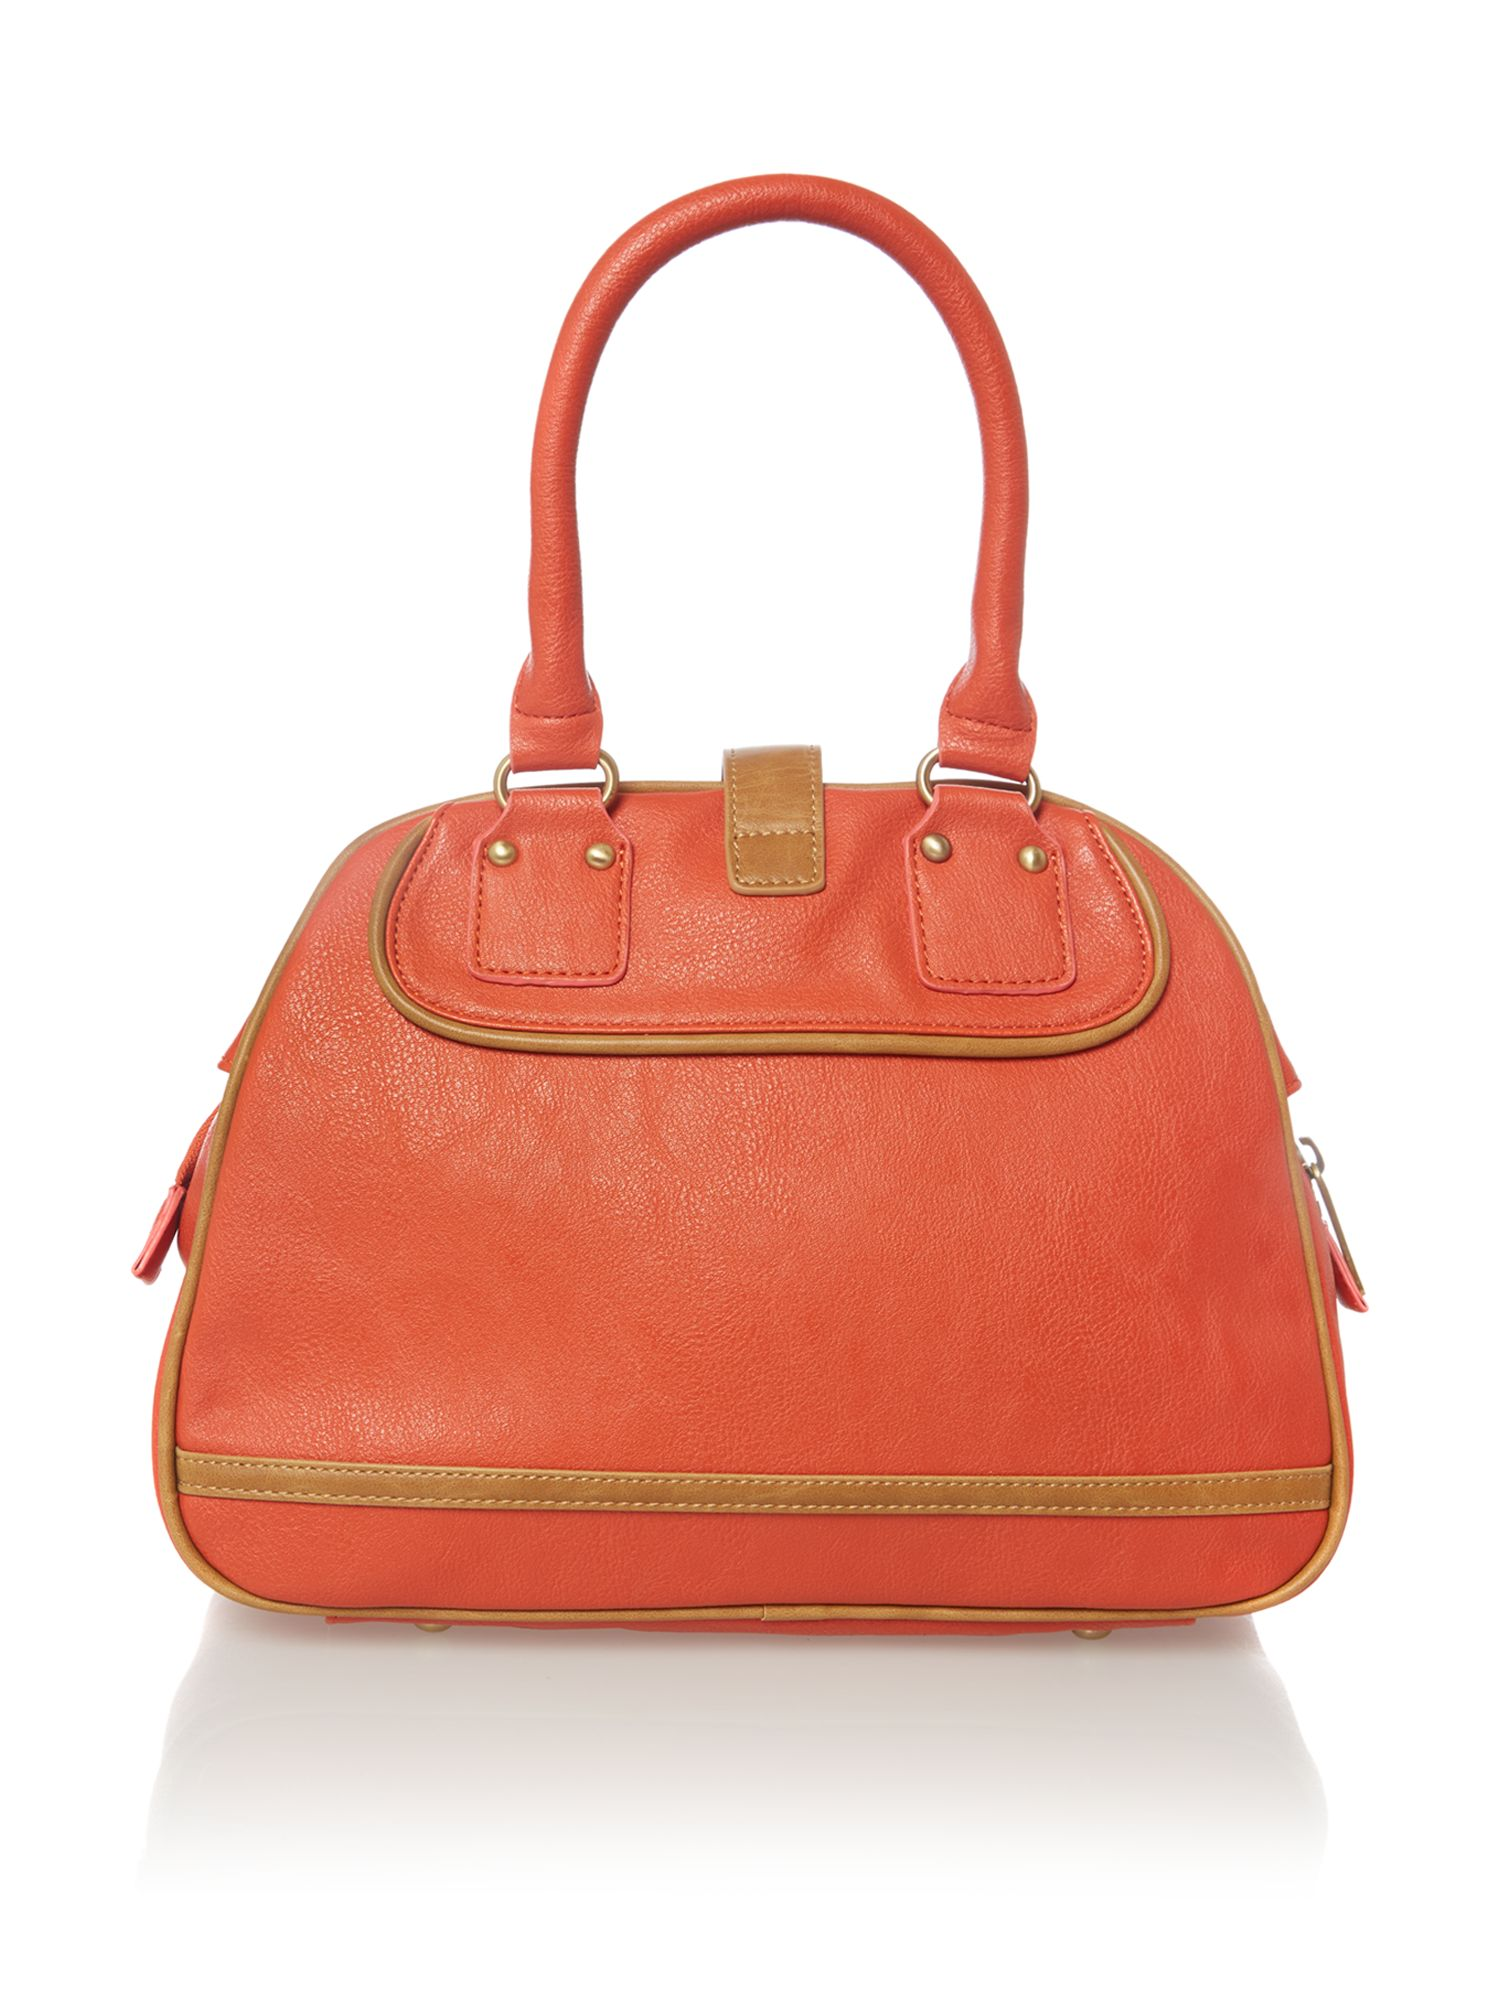 Bear orange cross body bag